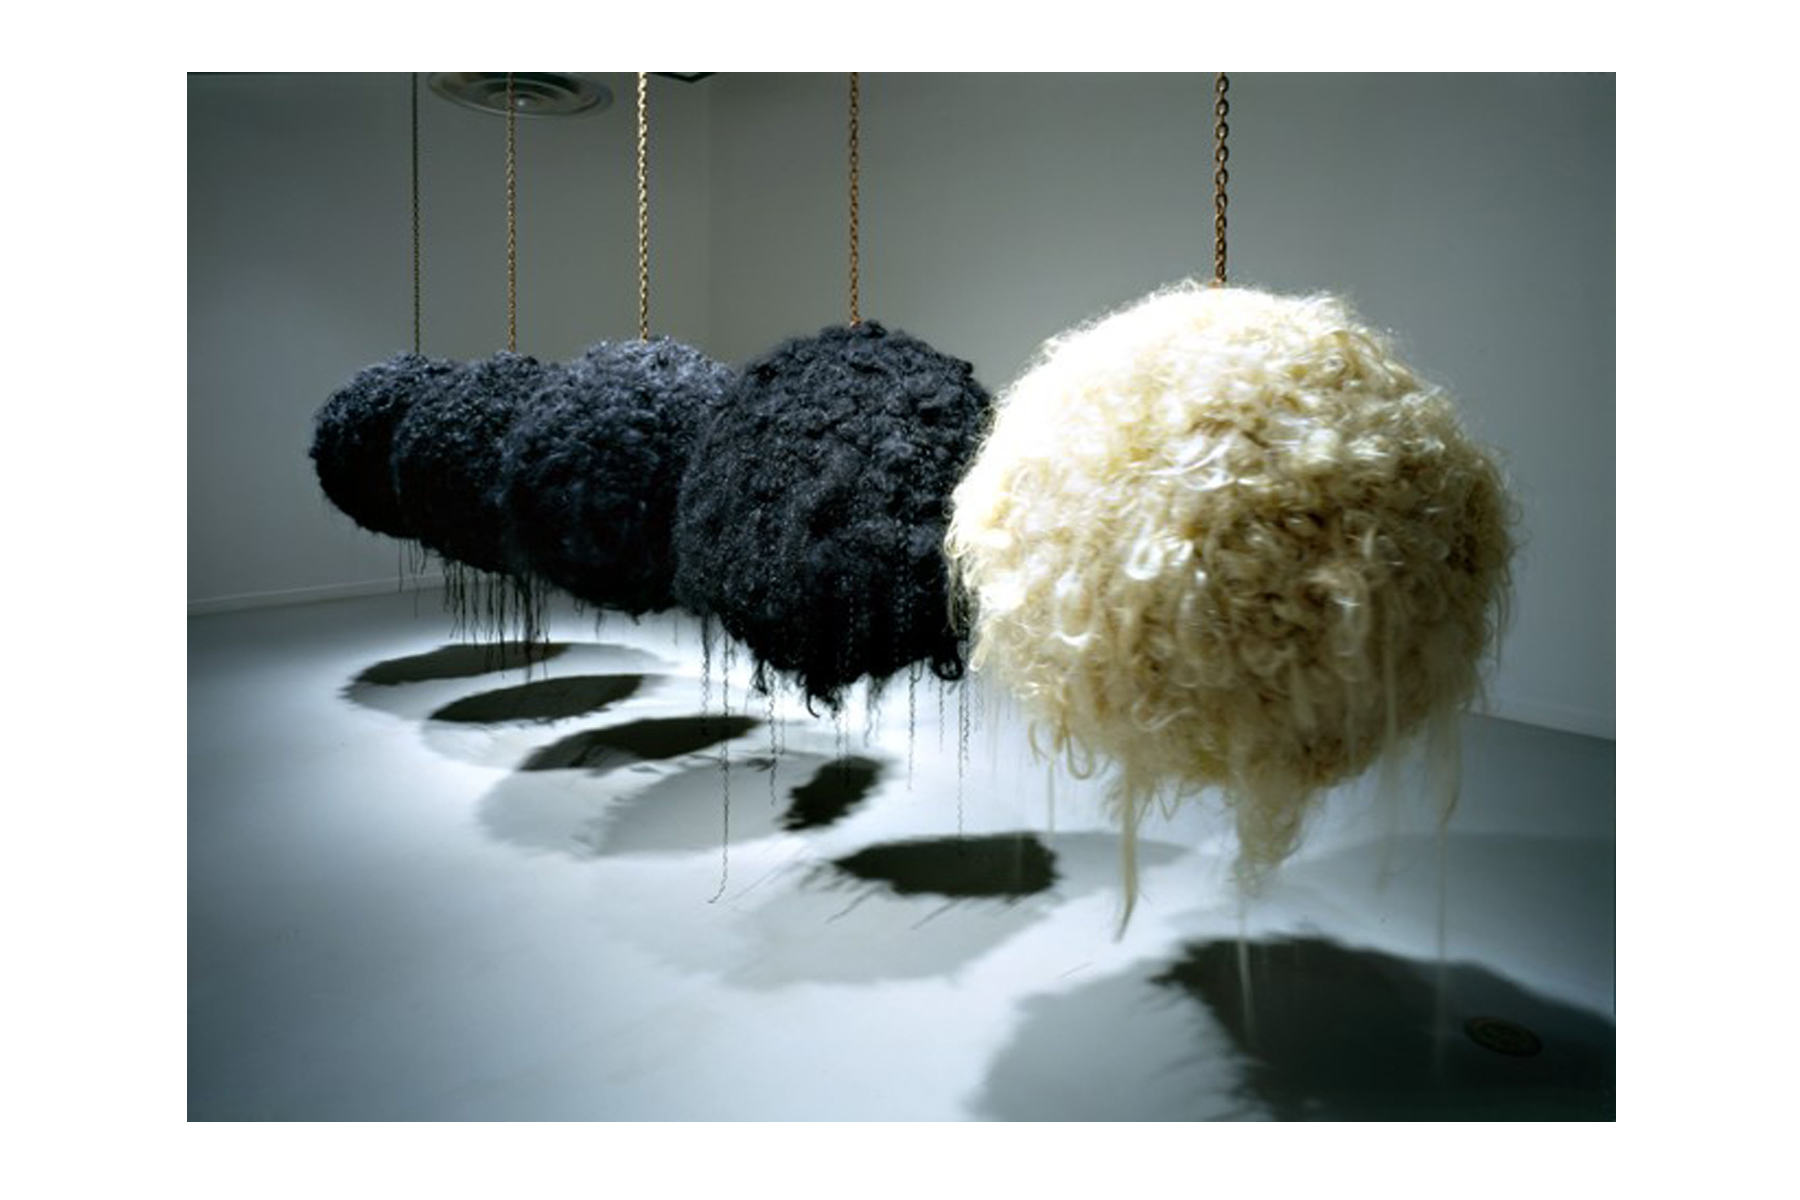 "Castillo. Excentricidad Ecliptica (Ecliptic Eccentricity) Installation View, 2000, Synthetic Hair, Rusted Chain, 36"" x 36"" x 36"""